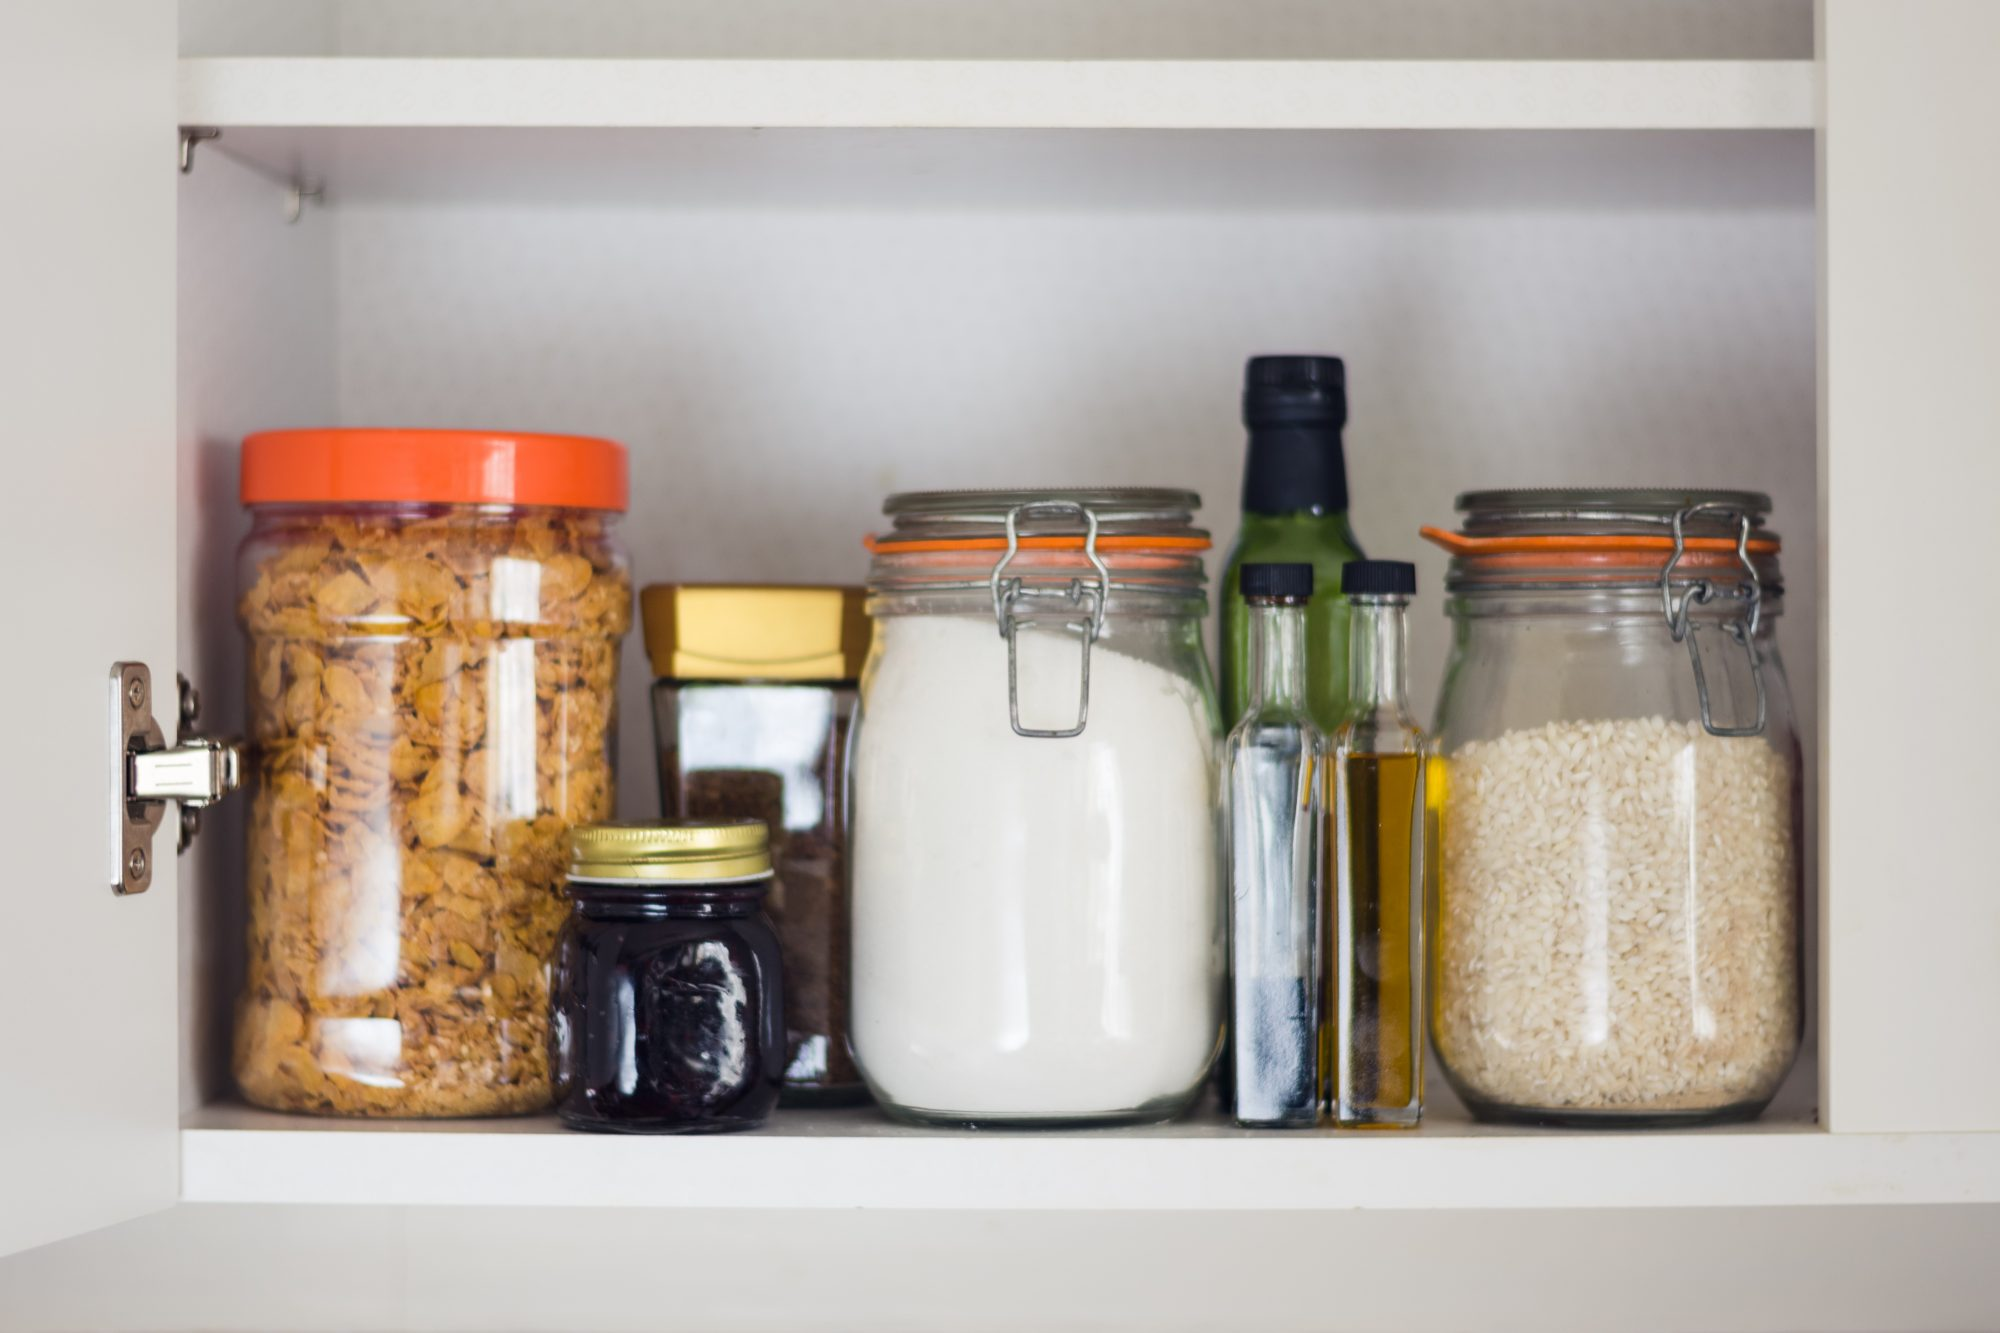 Forum on this topic: 10 Kitchen Pantry Beauty Ingredients, 10-kitchen-pantry-beauty-ingredients/